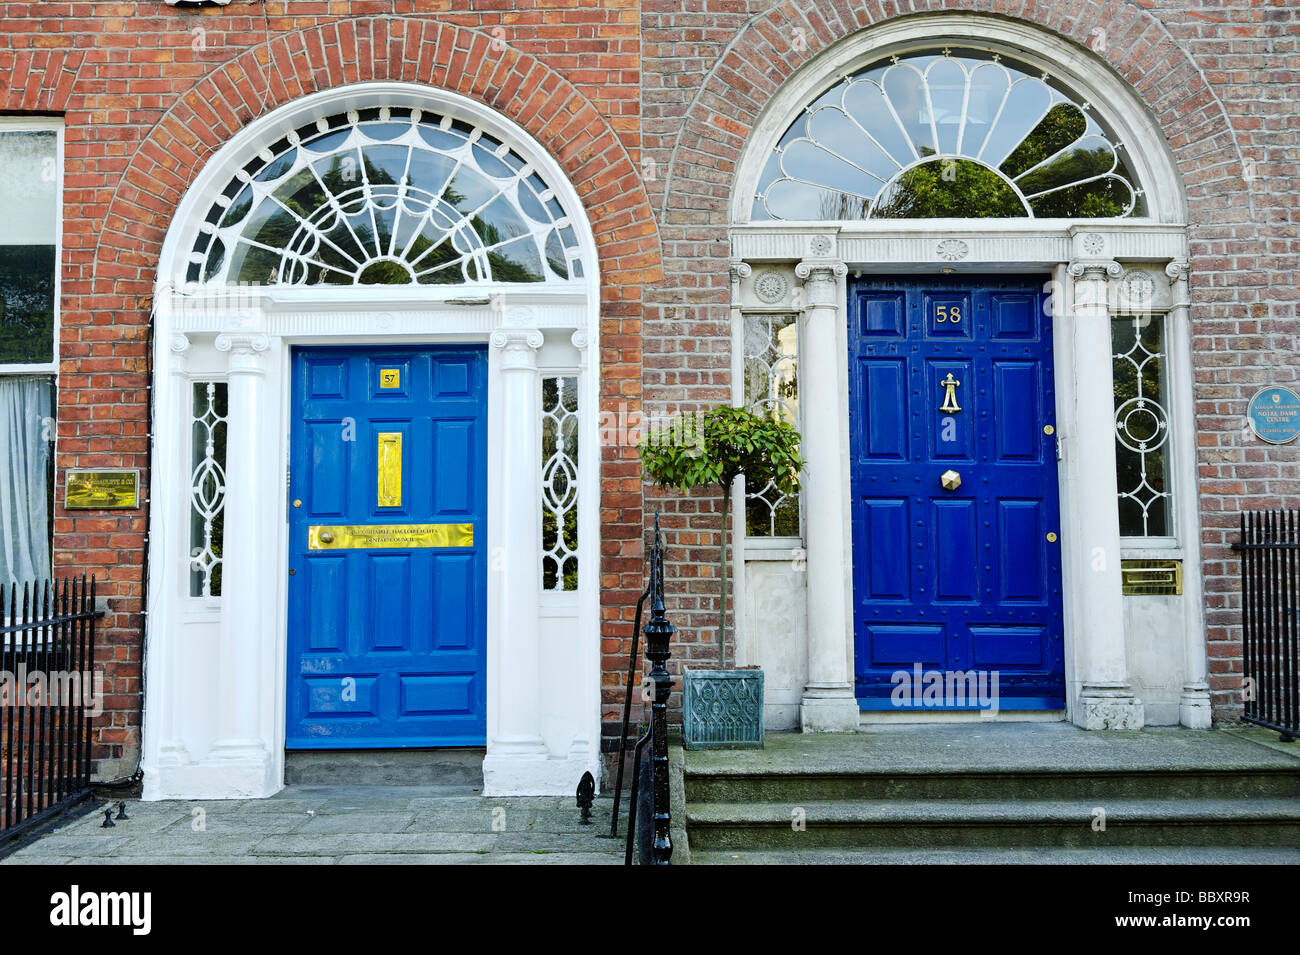 Colourful blue doors on entrances to terraced houses around Merrion Square Dublin Republic of Ireland - Stock Image